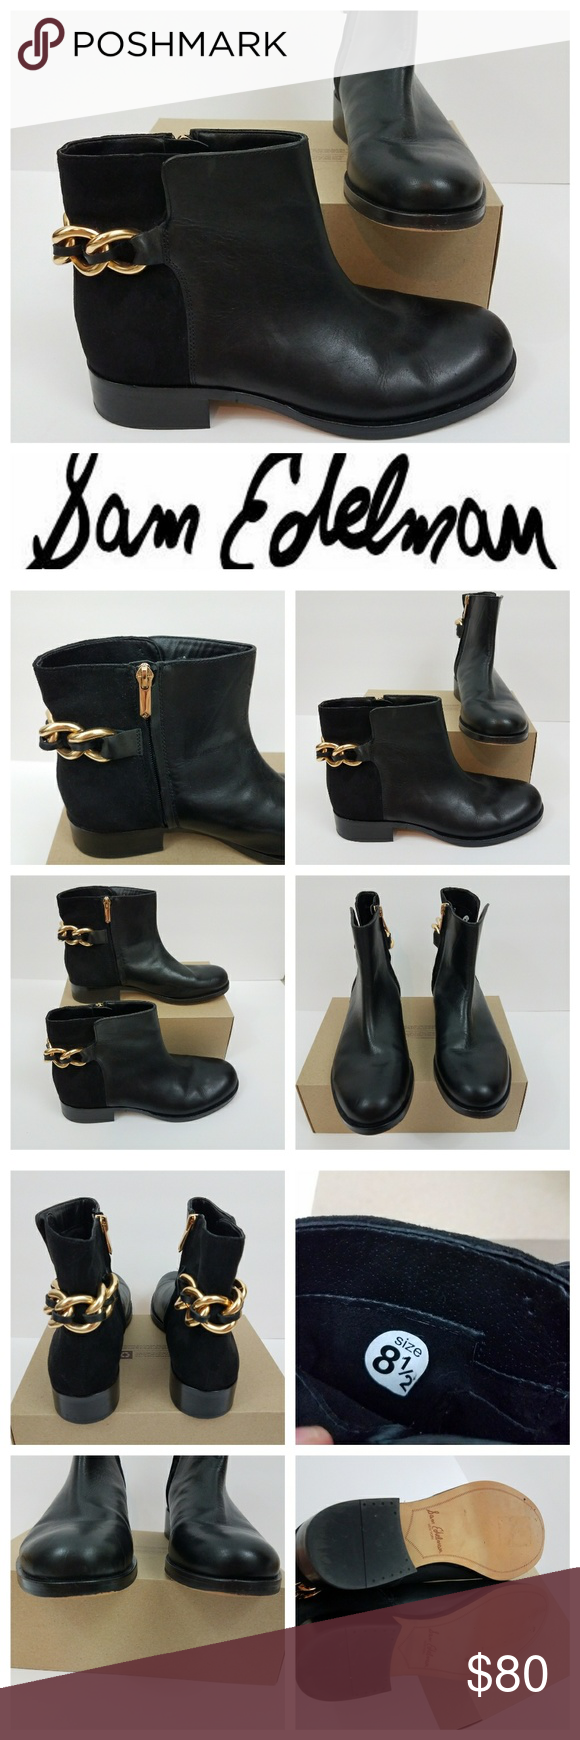 cf01a73b9770bd Sam edelman Chester ankle boots chain leather Sam edelman Chester ankle  boots. Leather and suede